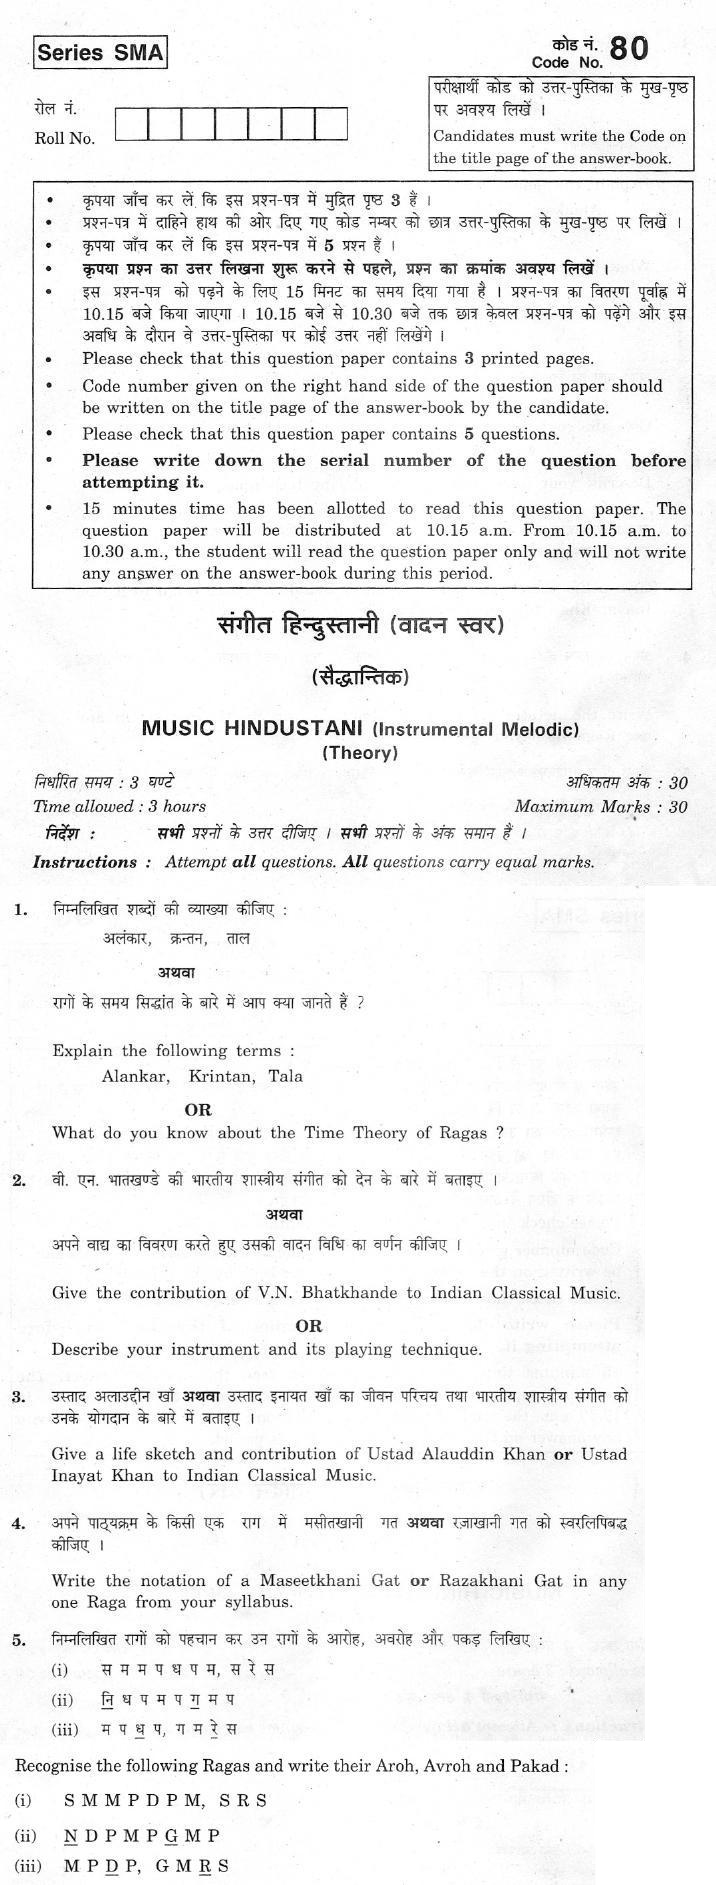 CBSE Class XII Previous Year Question Paper 2012 Music Hindustani(Instrumental Melodic)